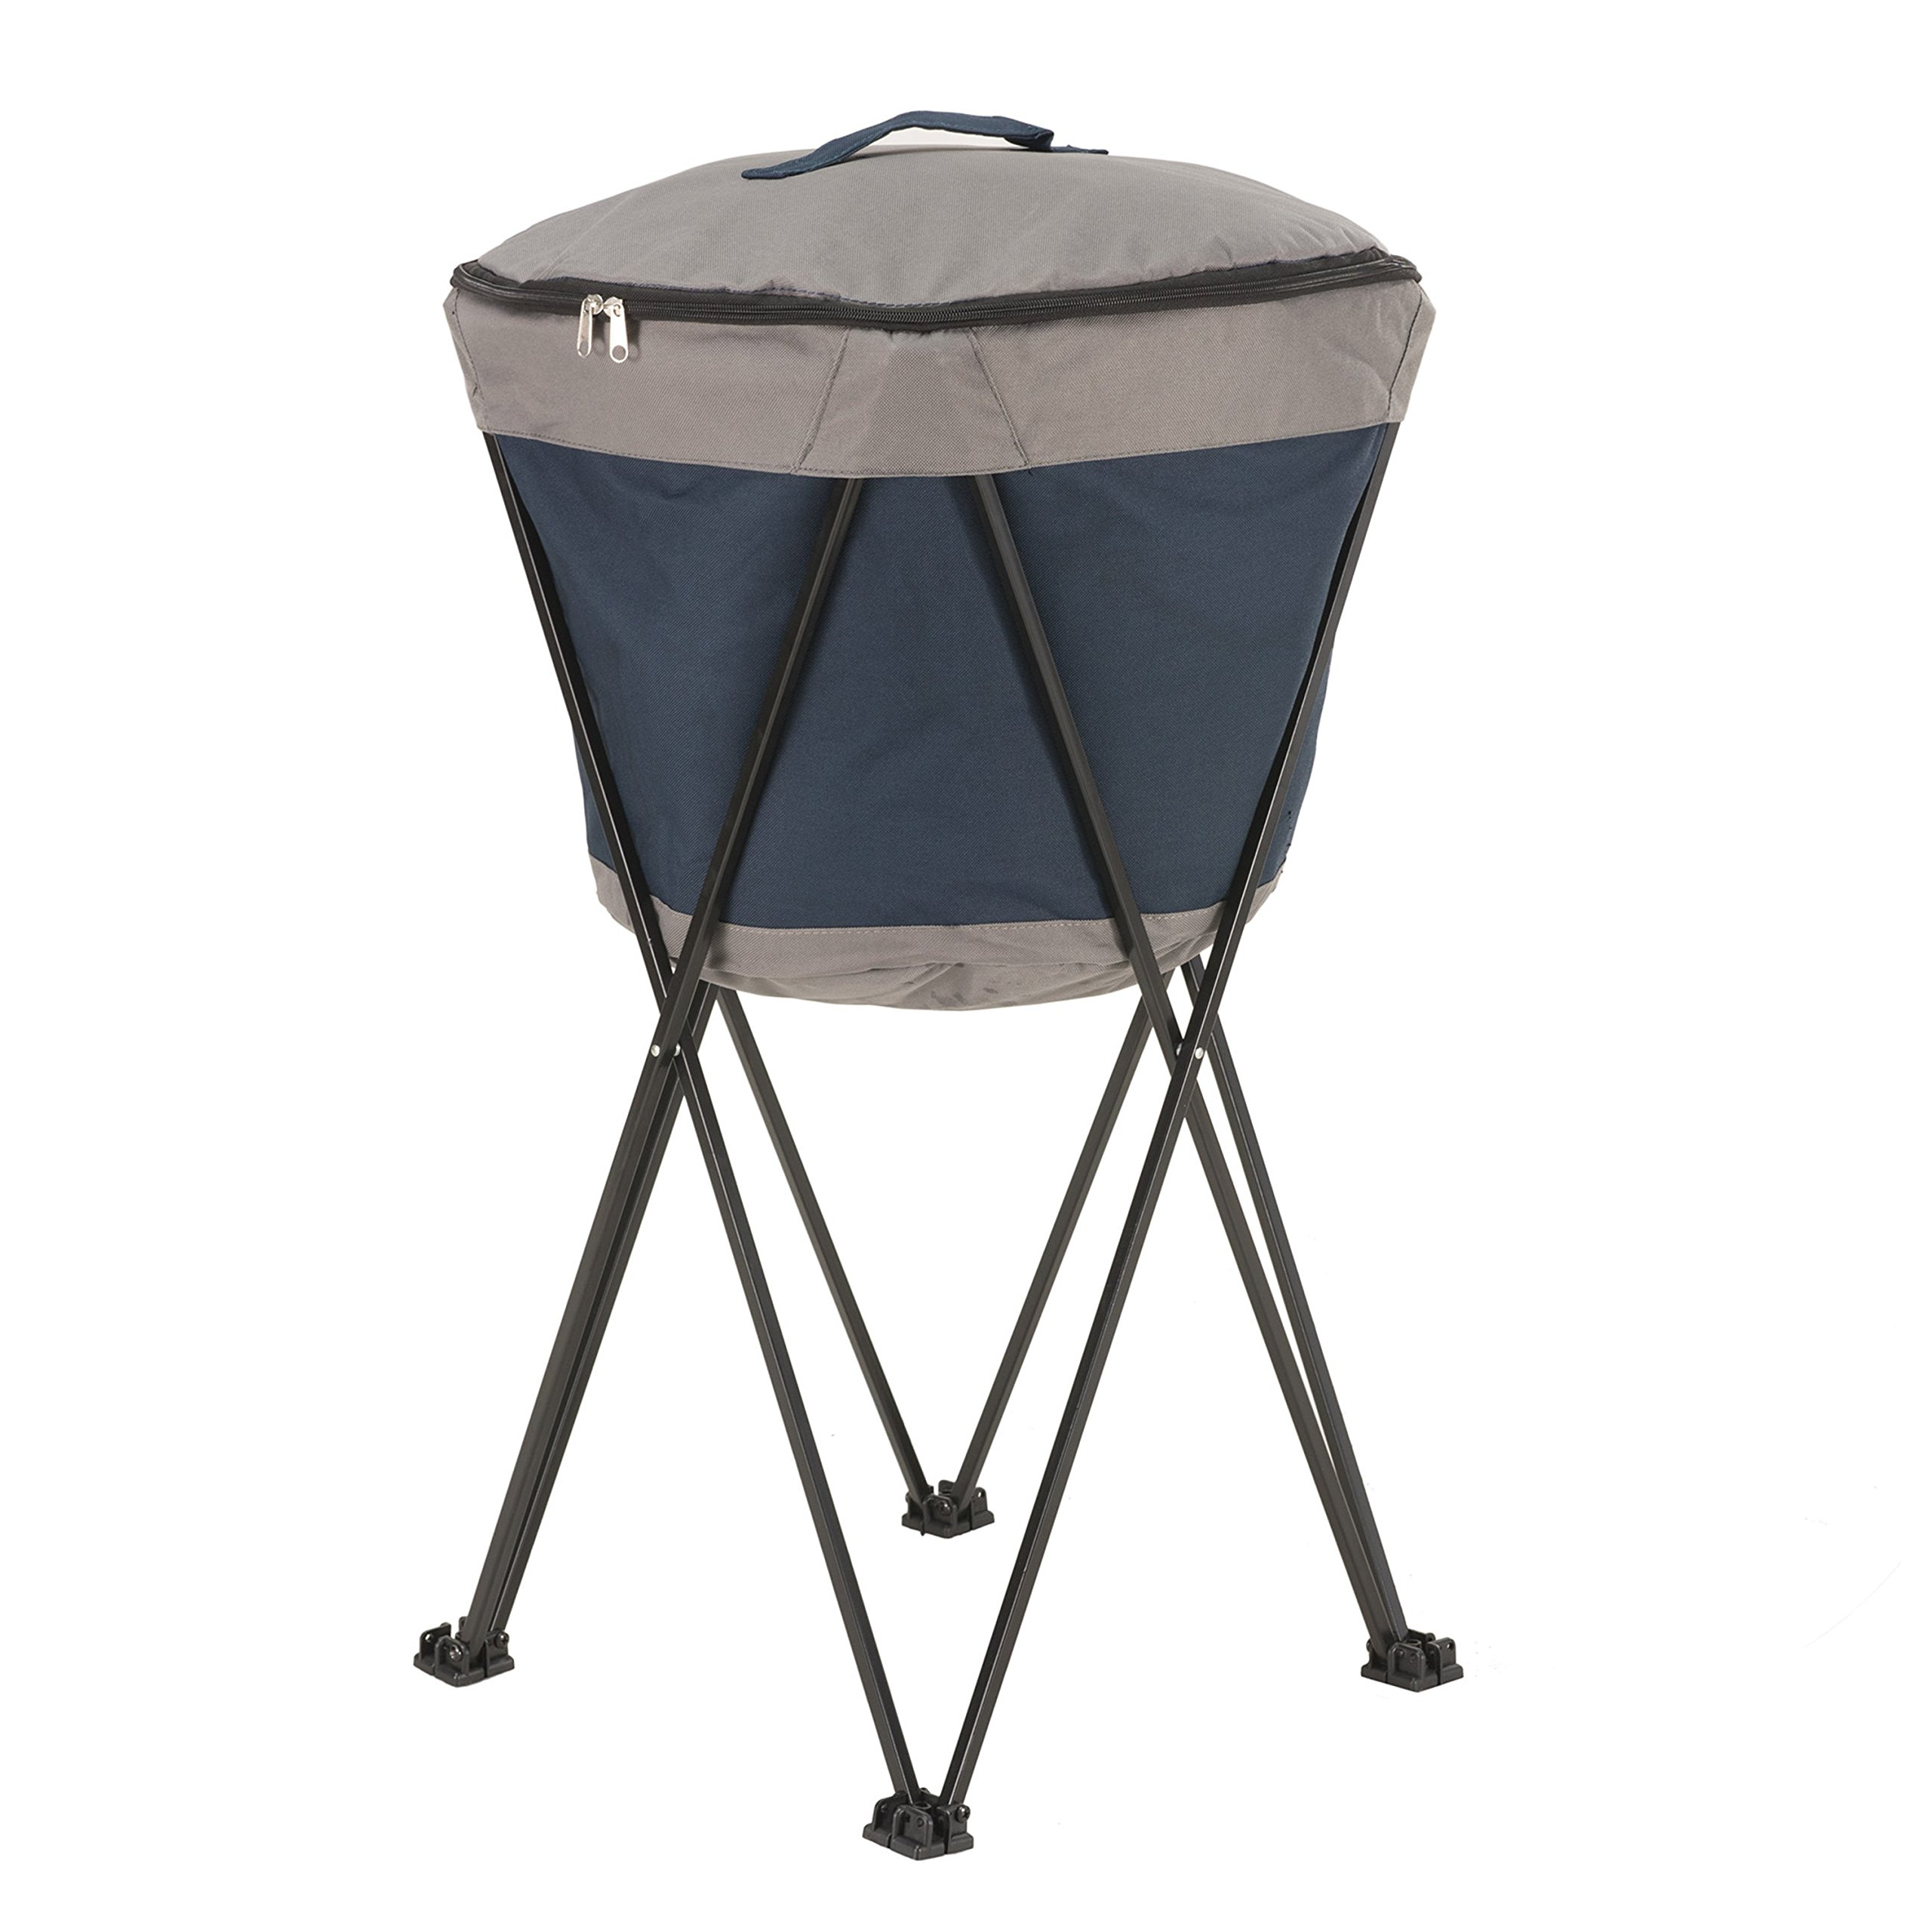 Sunjoy Forbes Portable Tub, 19.68 by 19.68 by 30-Inch